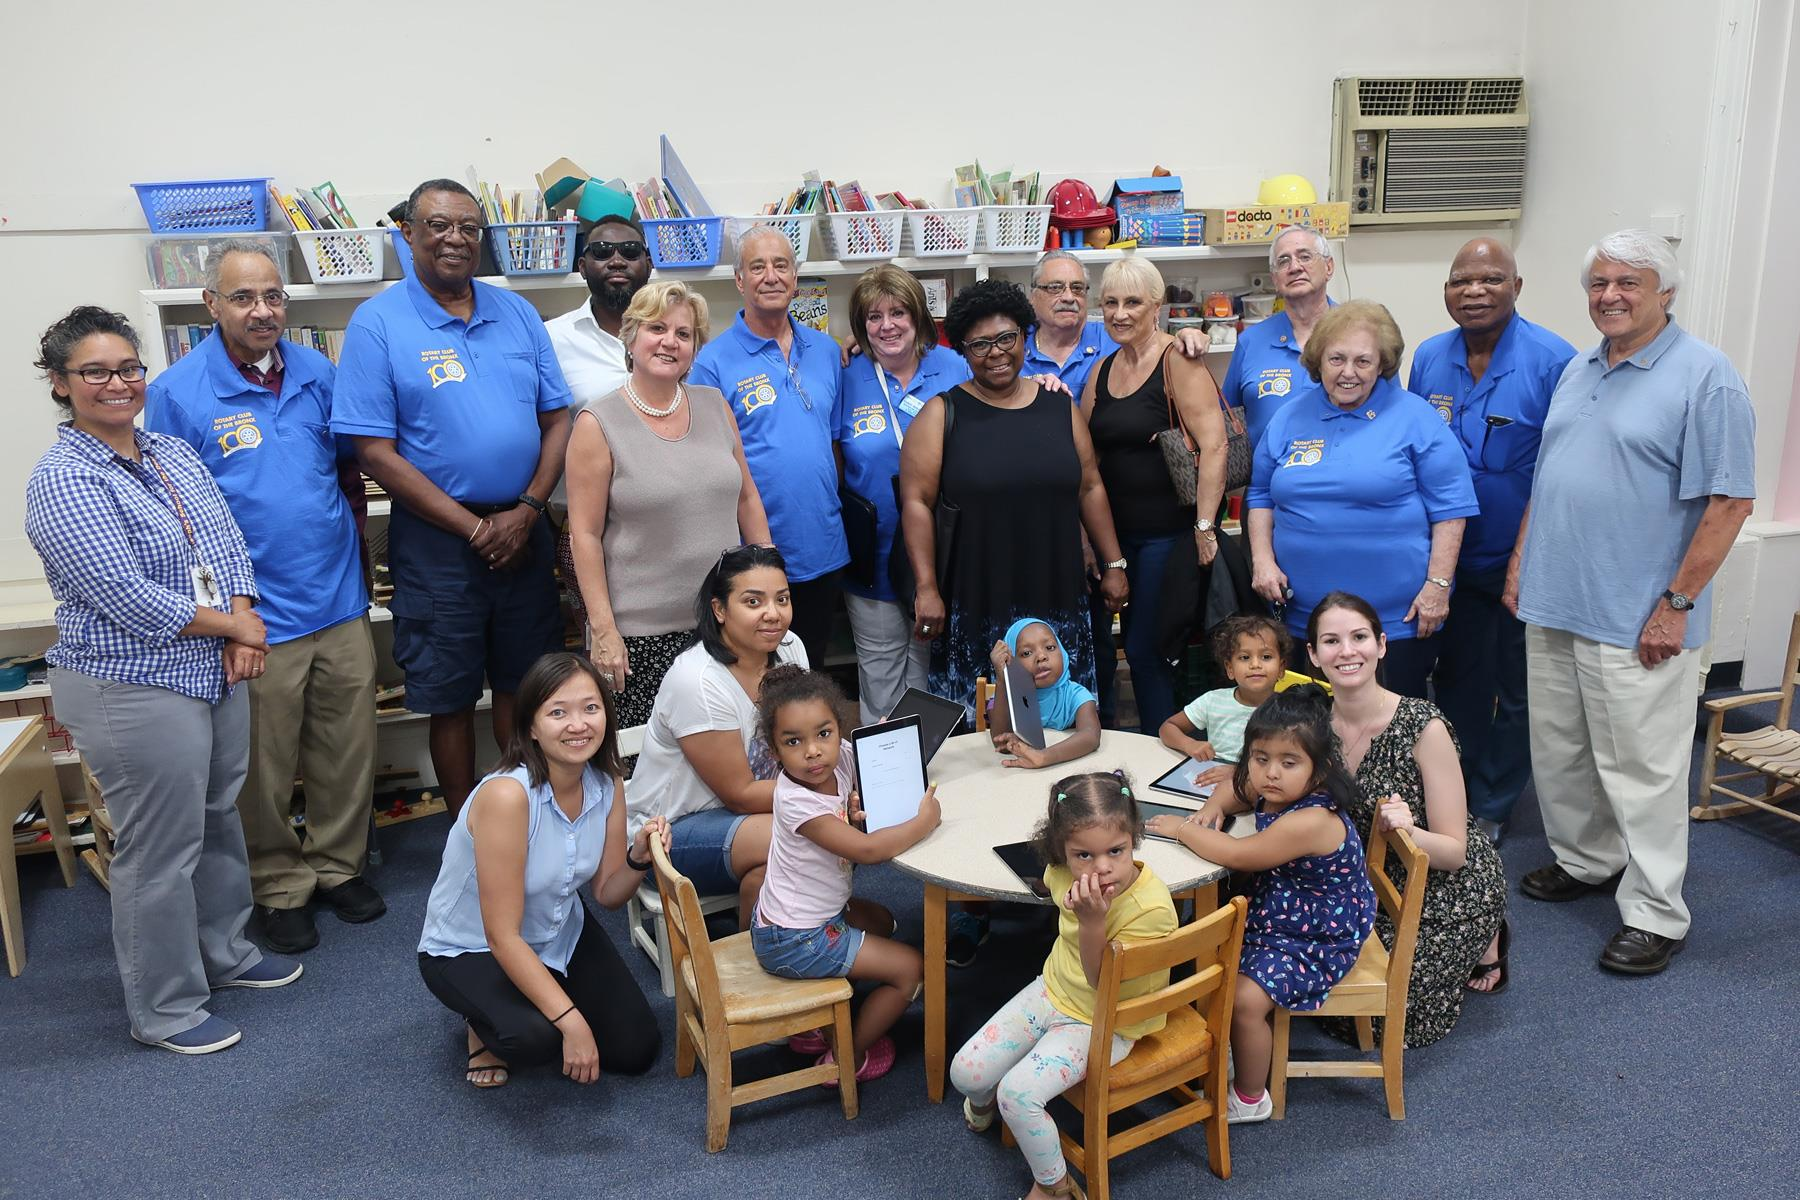 Bronx Rotary Club at St. Joseph's School for the Deaf